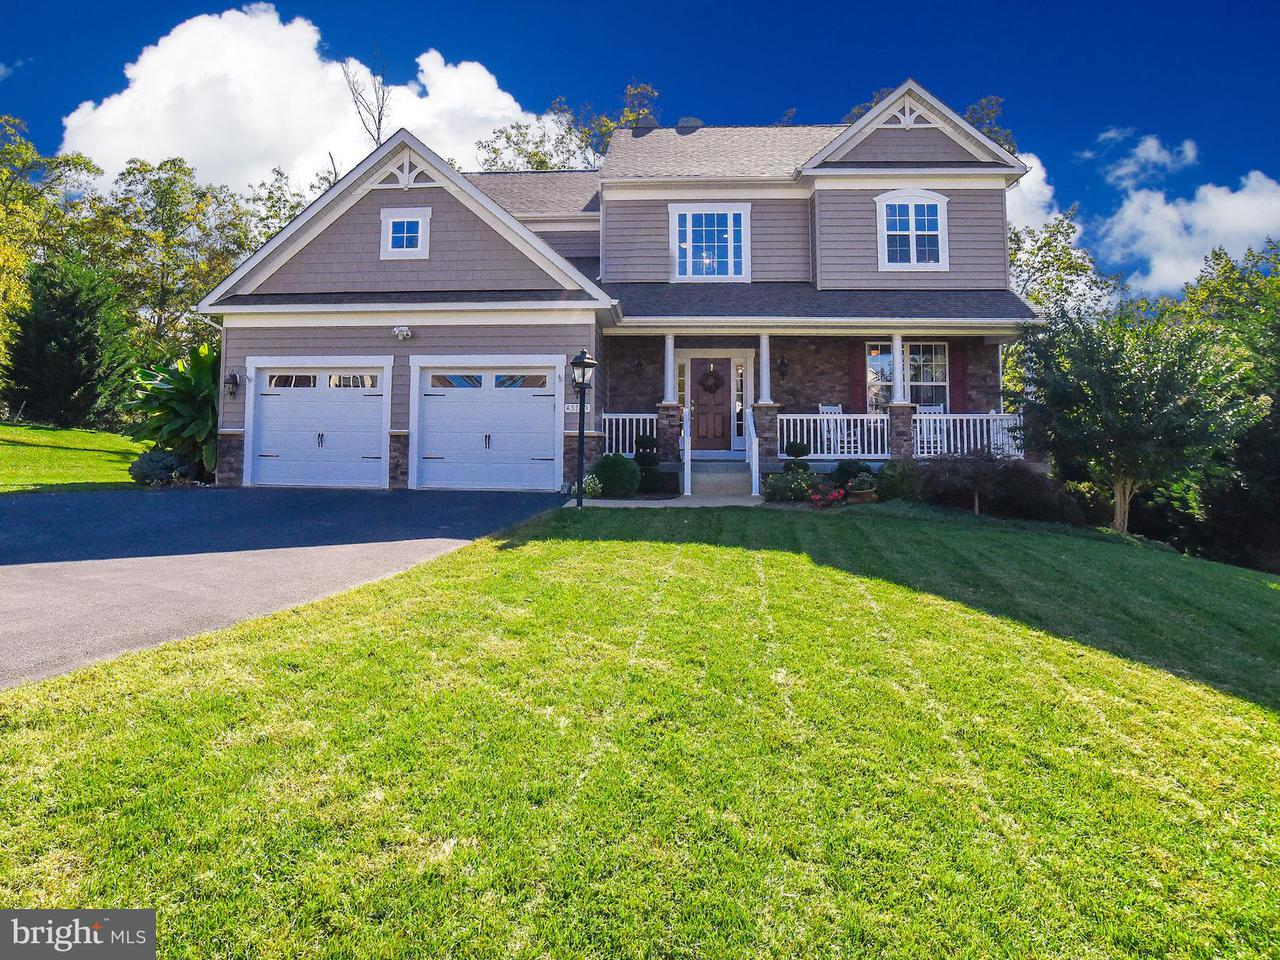 Single Family Home for Sale at 45103 WOODHAVEN Drive 45103 WOODHAVEN Drive California, Maryland 20619 United States